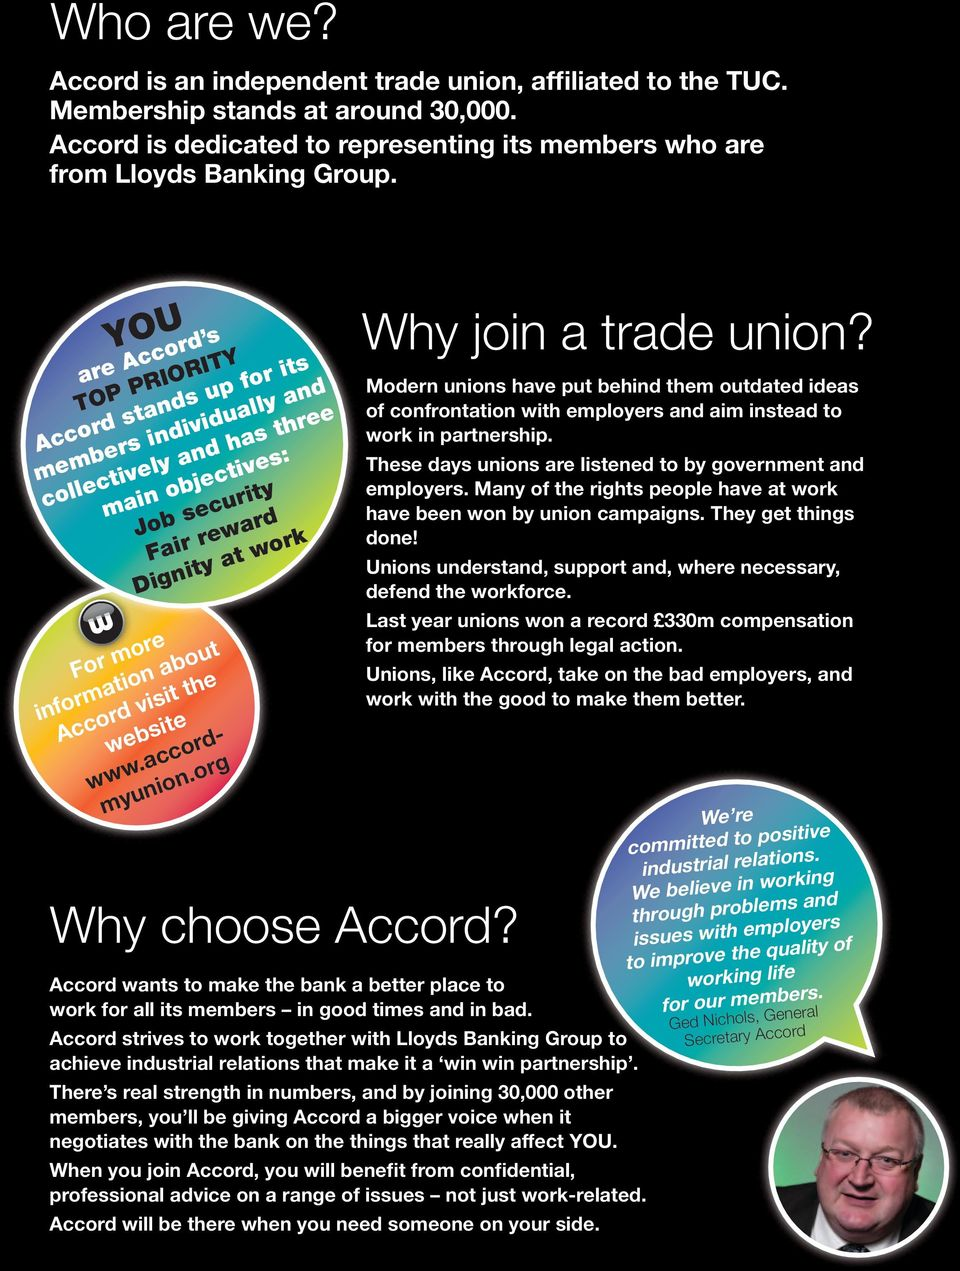 visit the website www.accordmyunion.org Why choose Accord? Accord wants to make the bank a better place to work for all its members in good times and in bad. Why join a trade union?